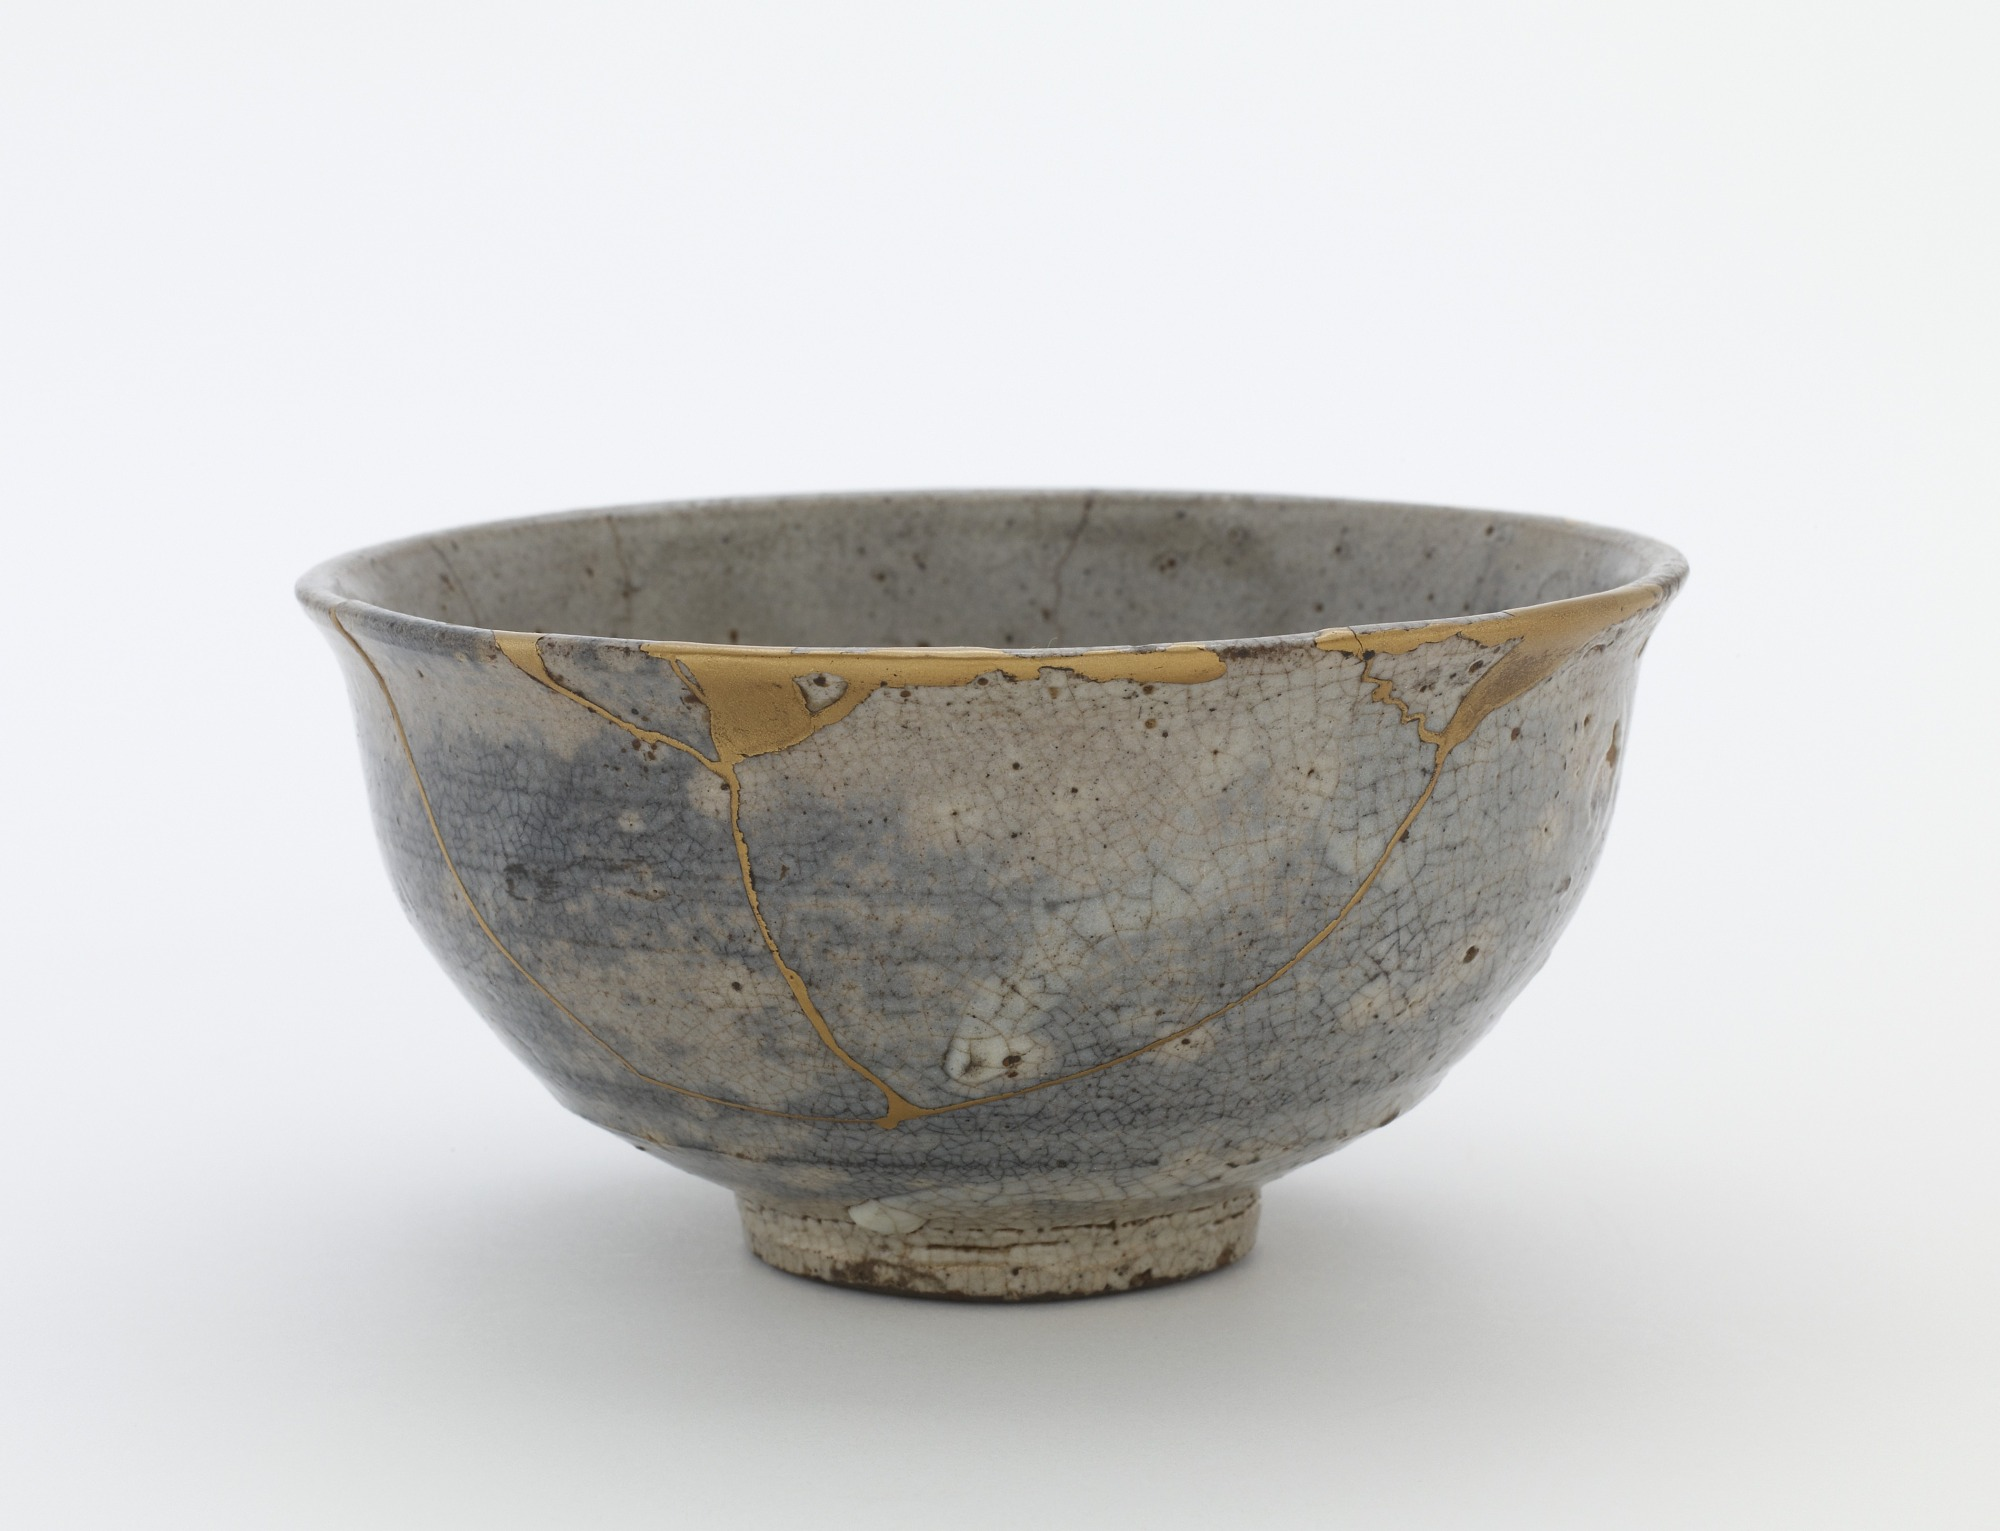 Bowl, used in Japan as a tea bowl, profile